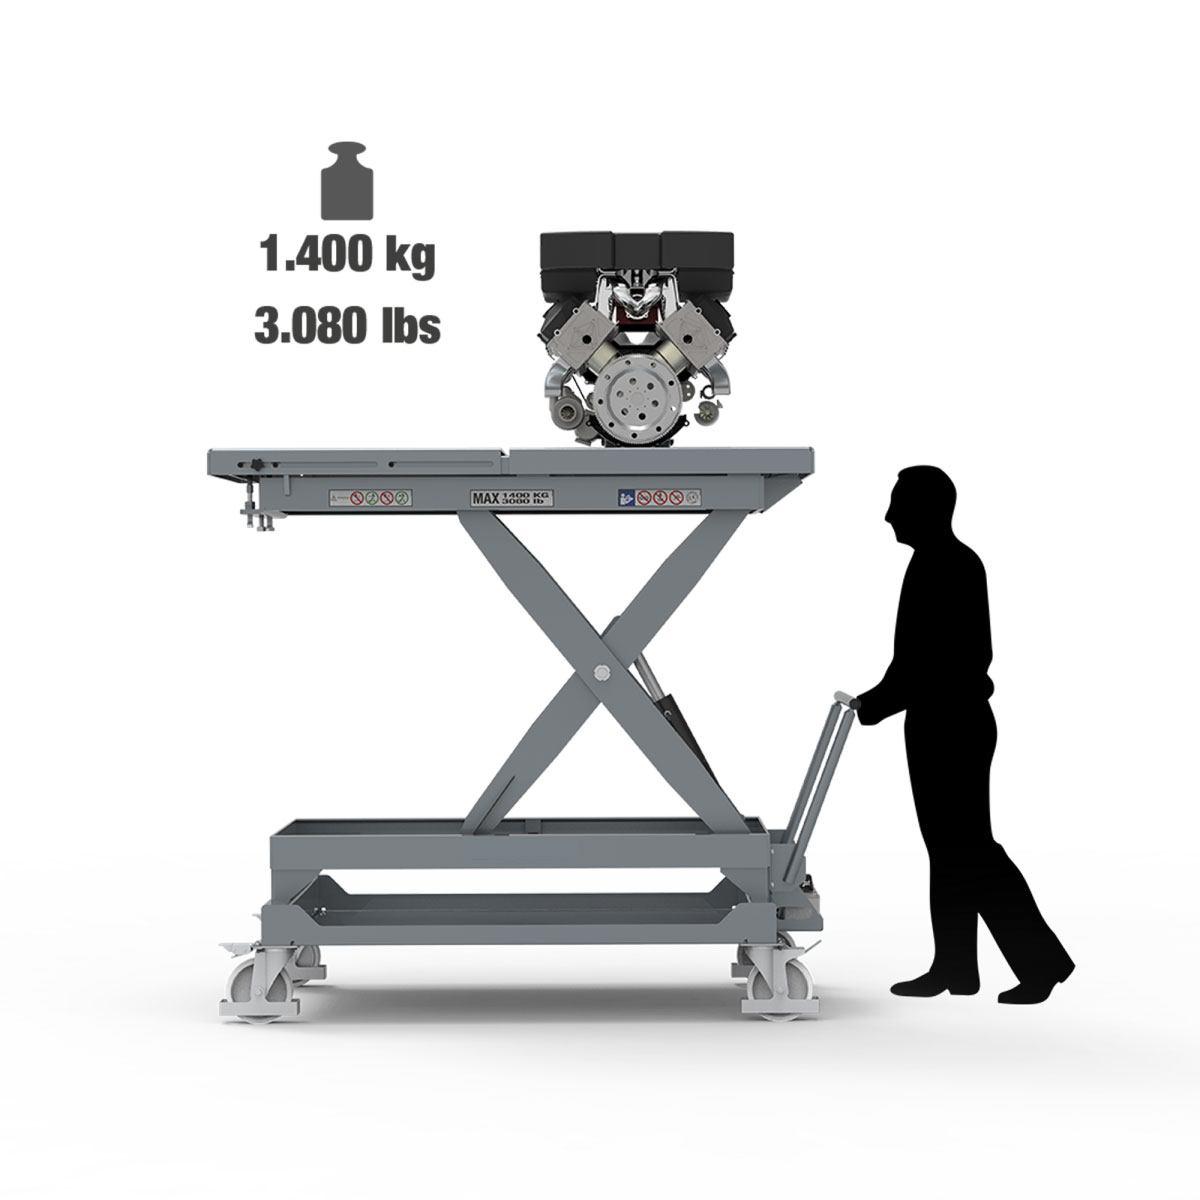 Table-Lift-in-extended-height-with-man